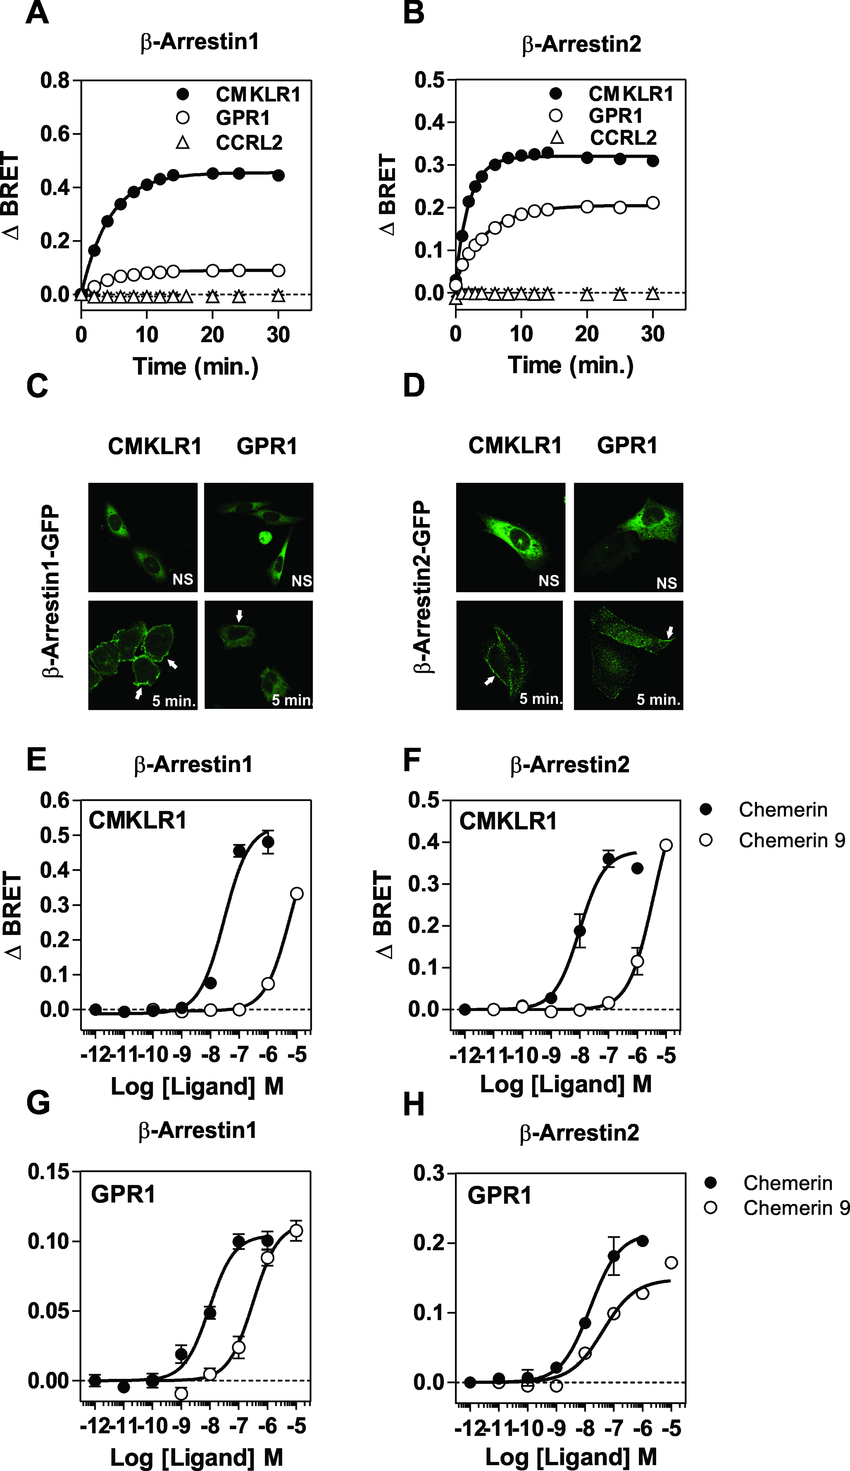 Recruitment of β-arrestins by CMKLR1 and GPR1. A. Real